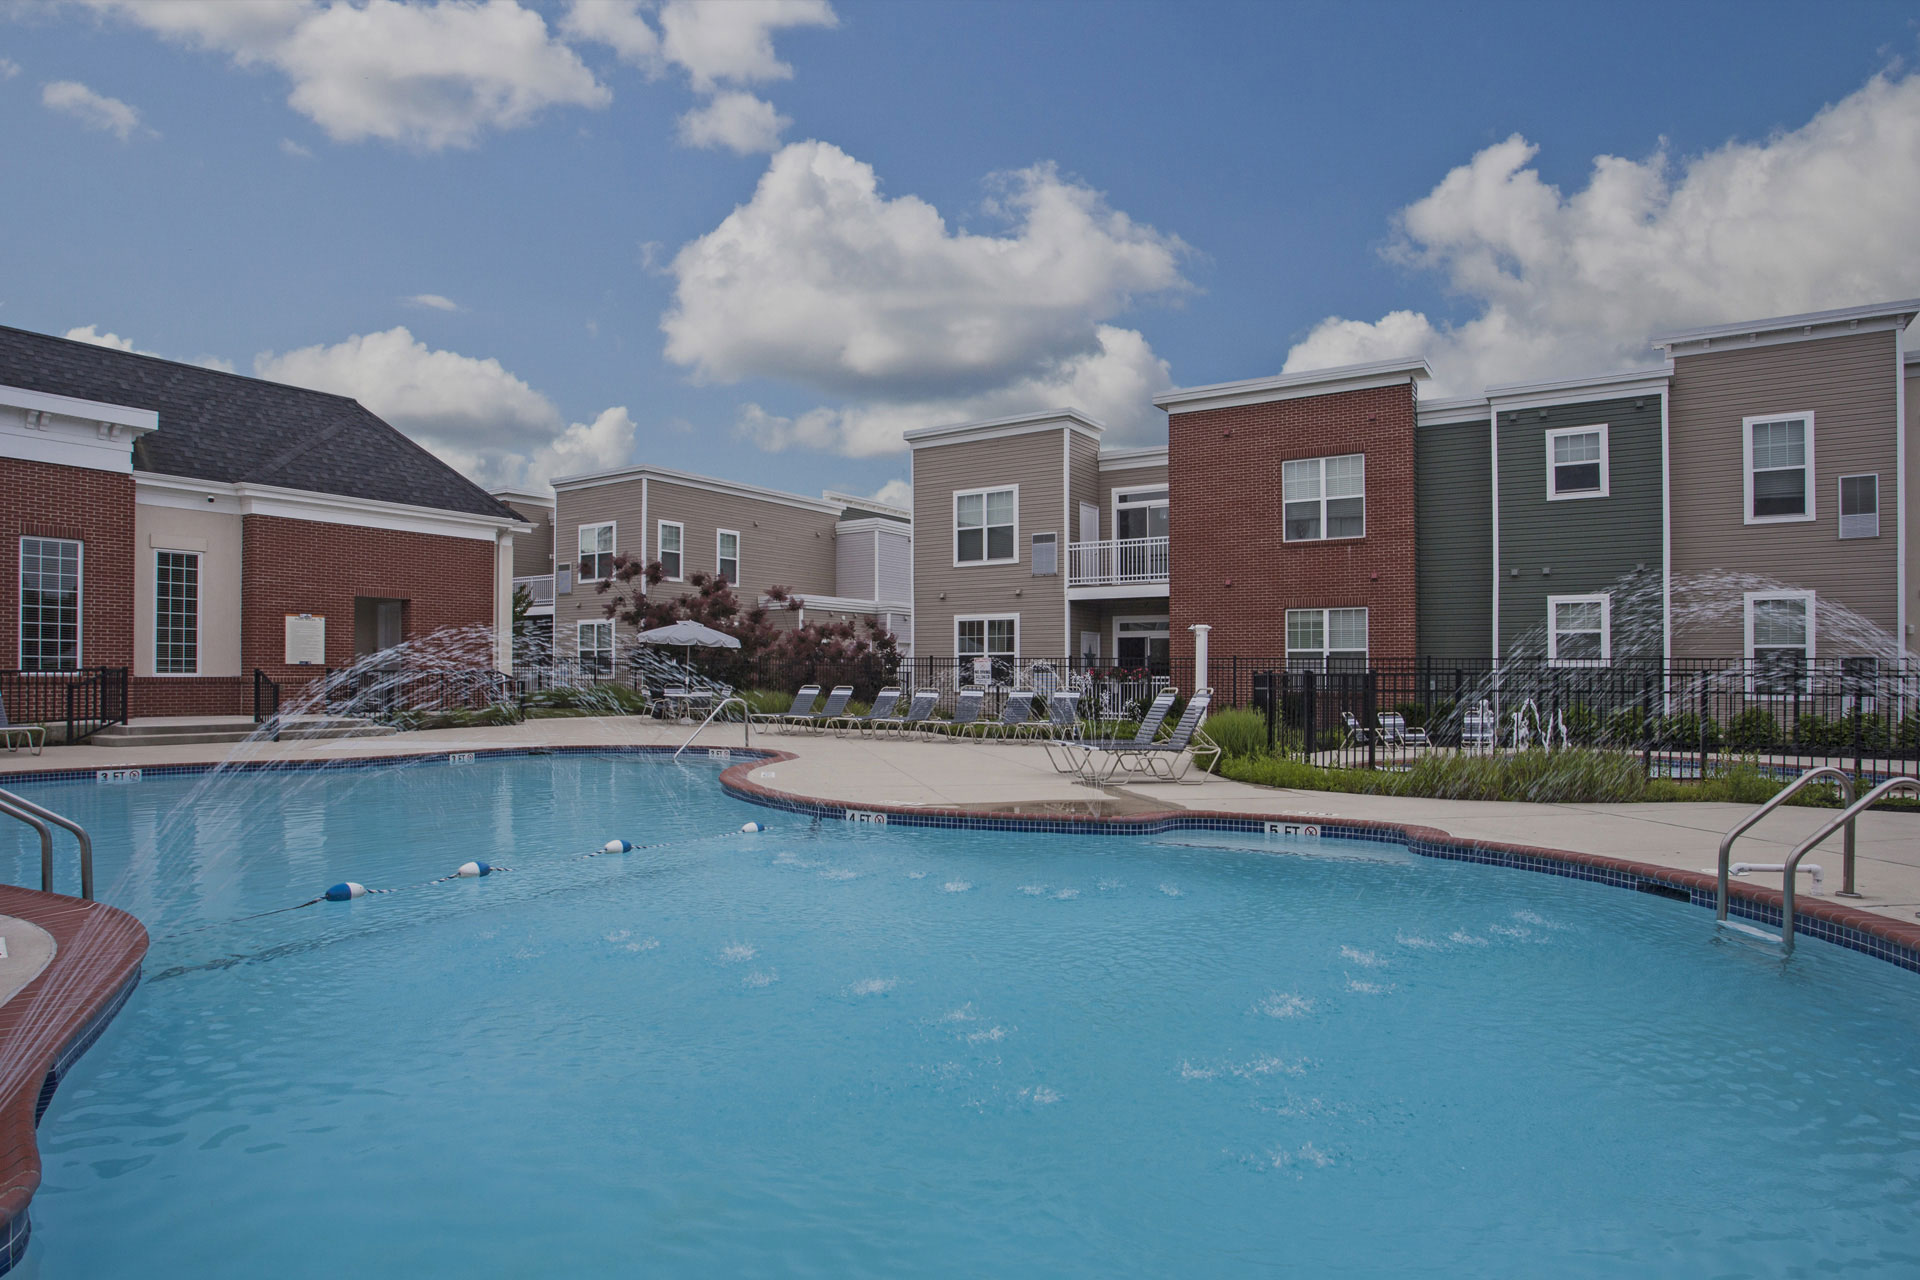 Luxury Apartments at Dwell Cherry Hill in Cherry Hill, NJ